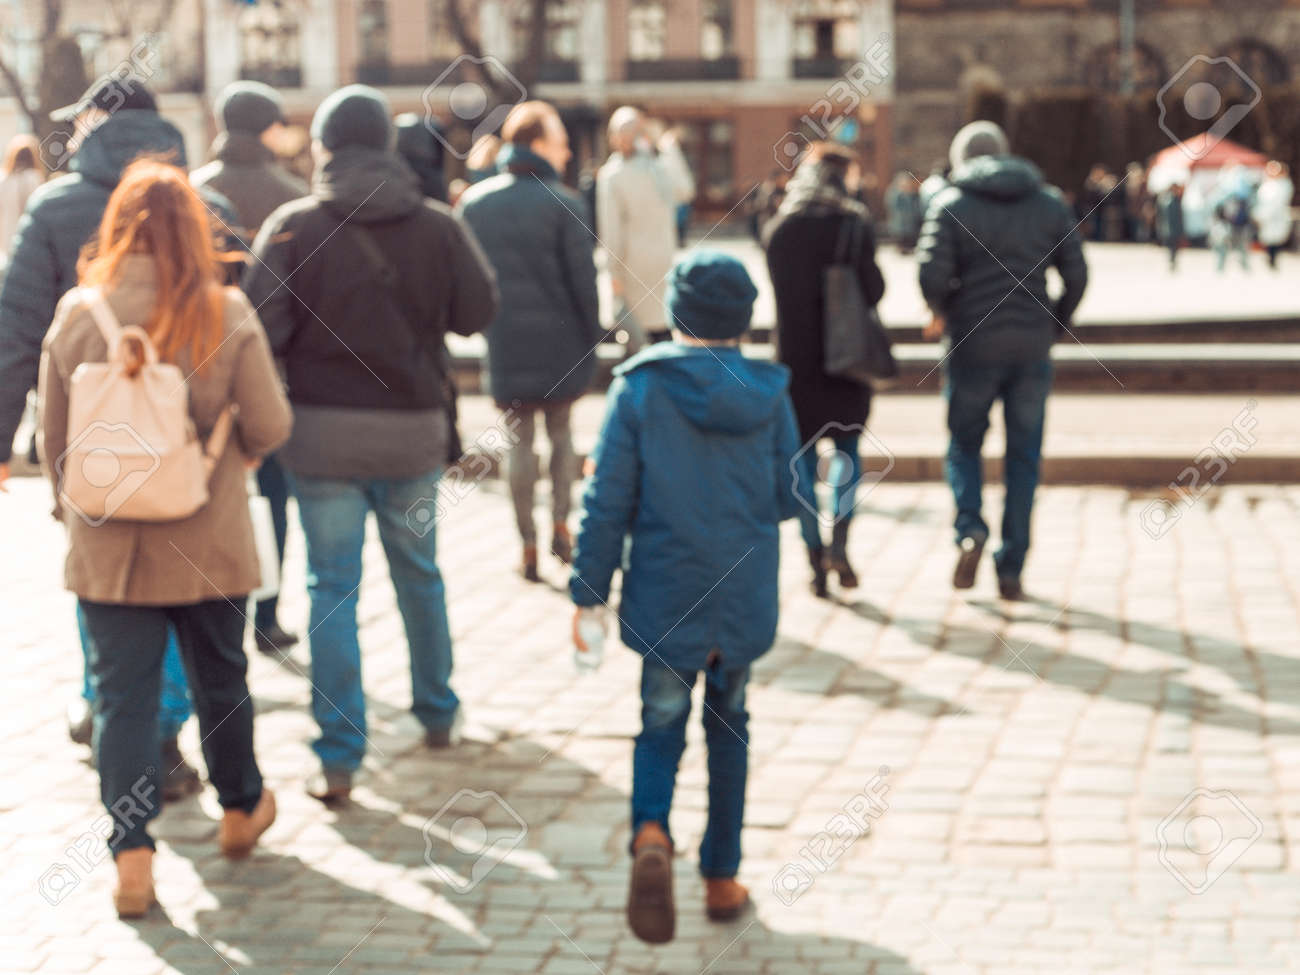 Blurred background. Blurred people walking through a city street. The photo is made out of focus, no faces are recognisable - 165670550